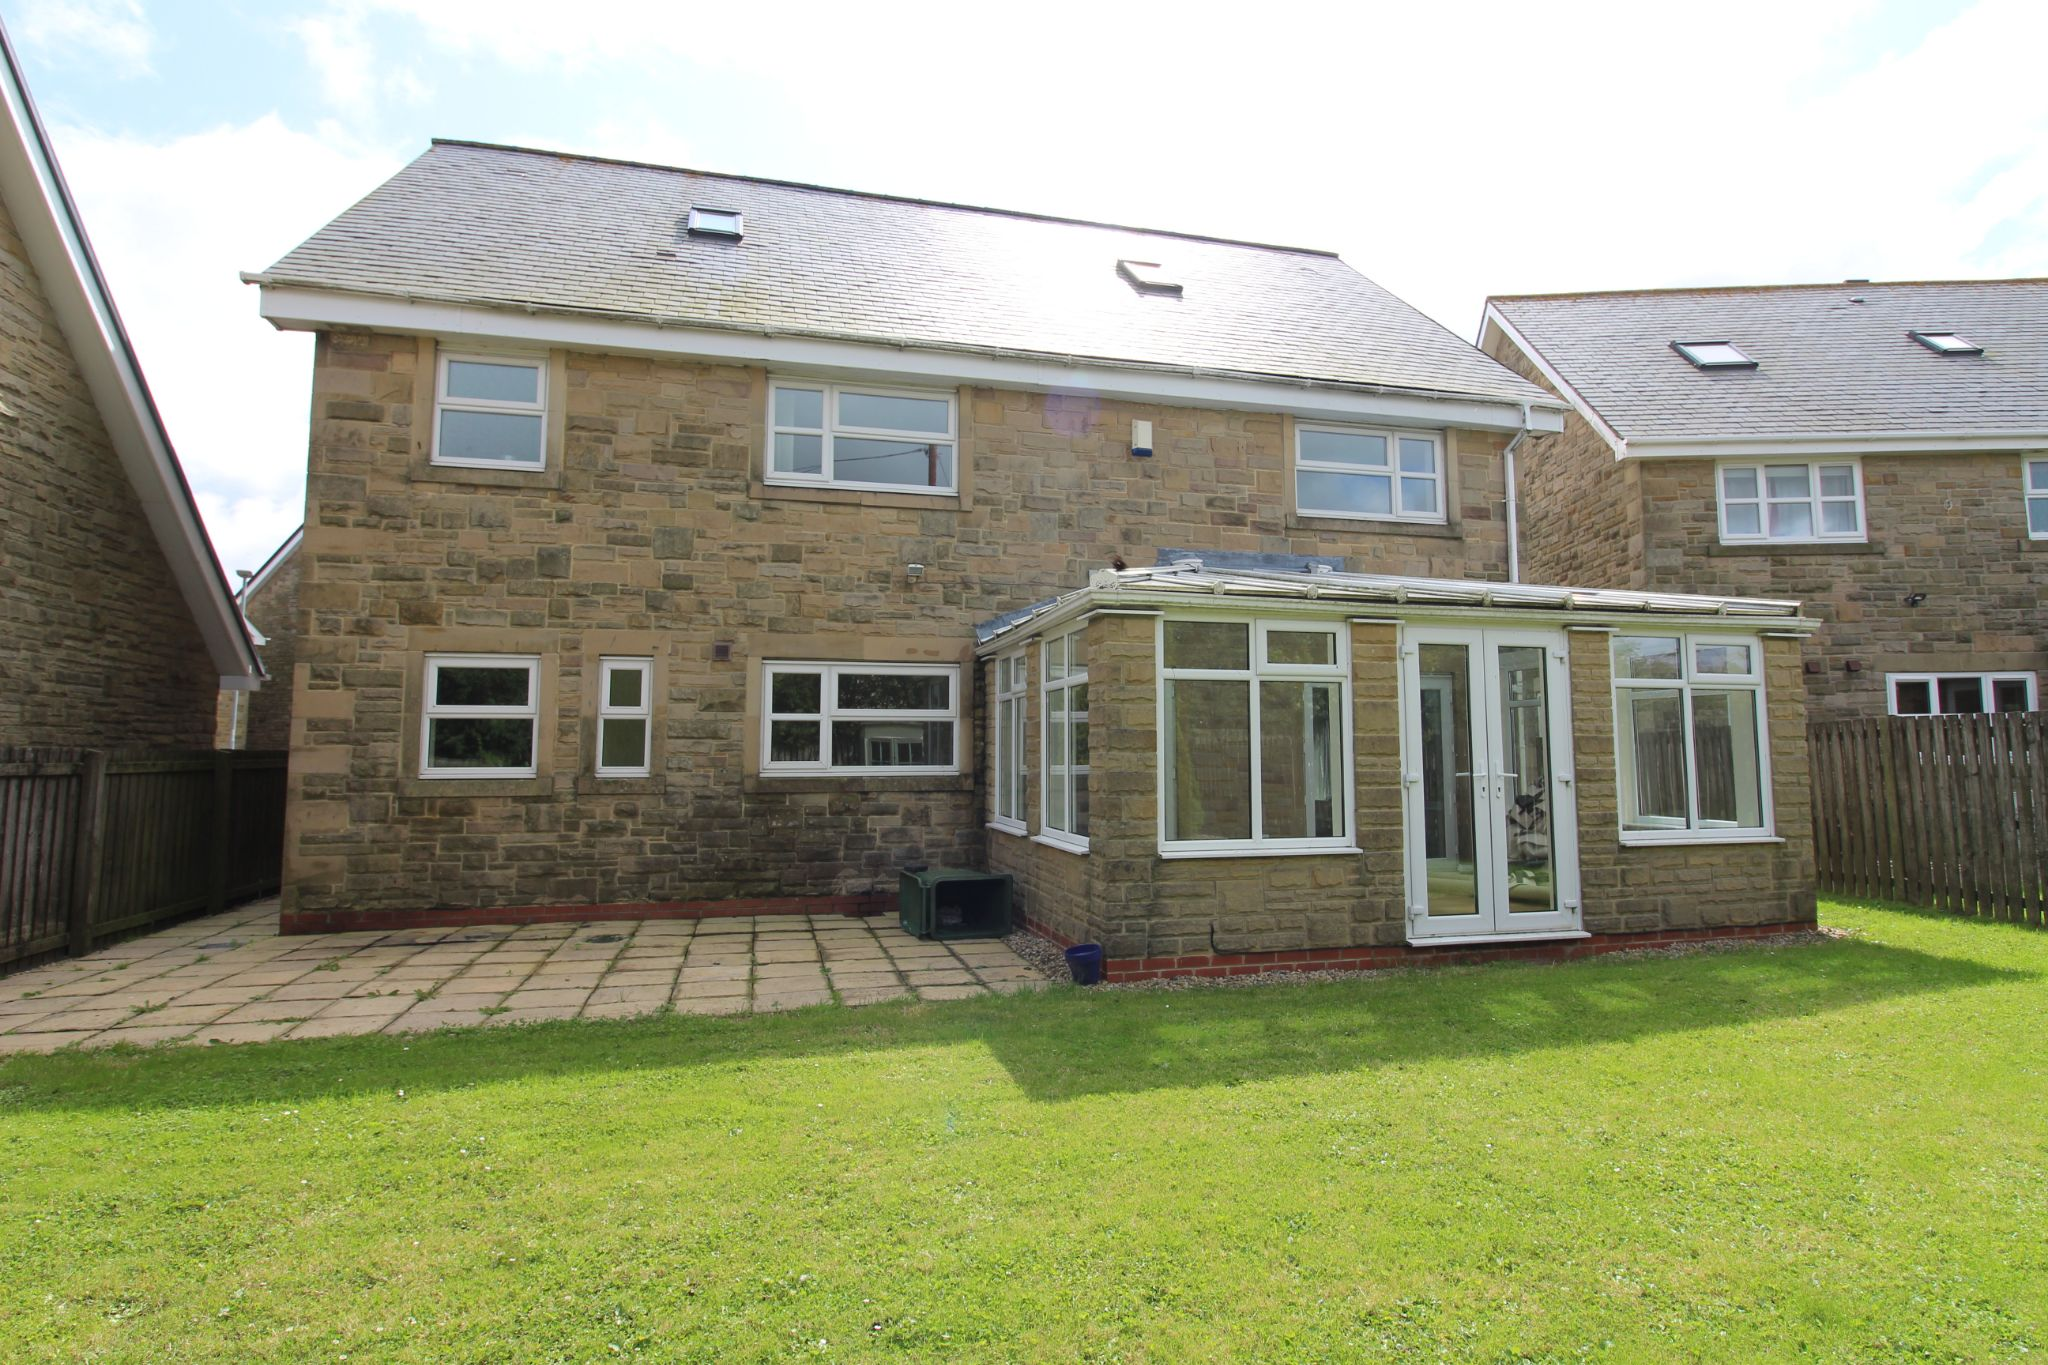 7 bedroom detached house Sale Agreed in Sunniside - Photograph 8.